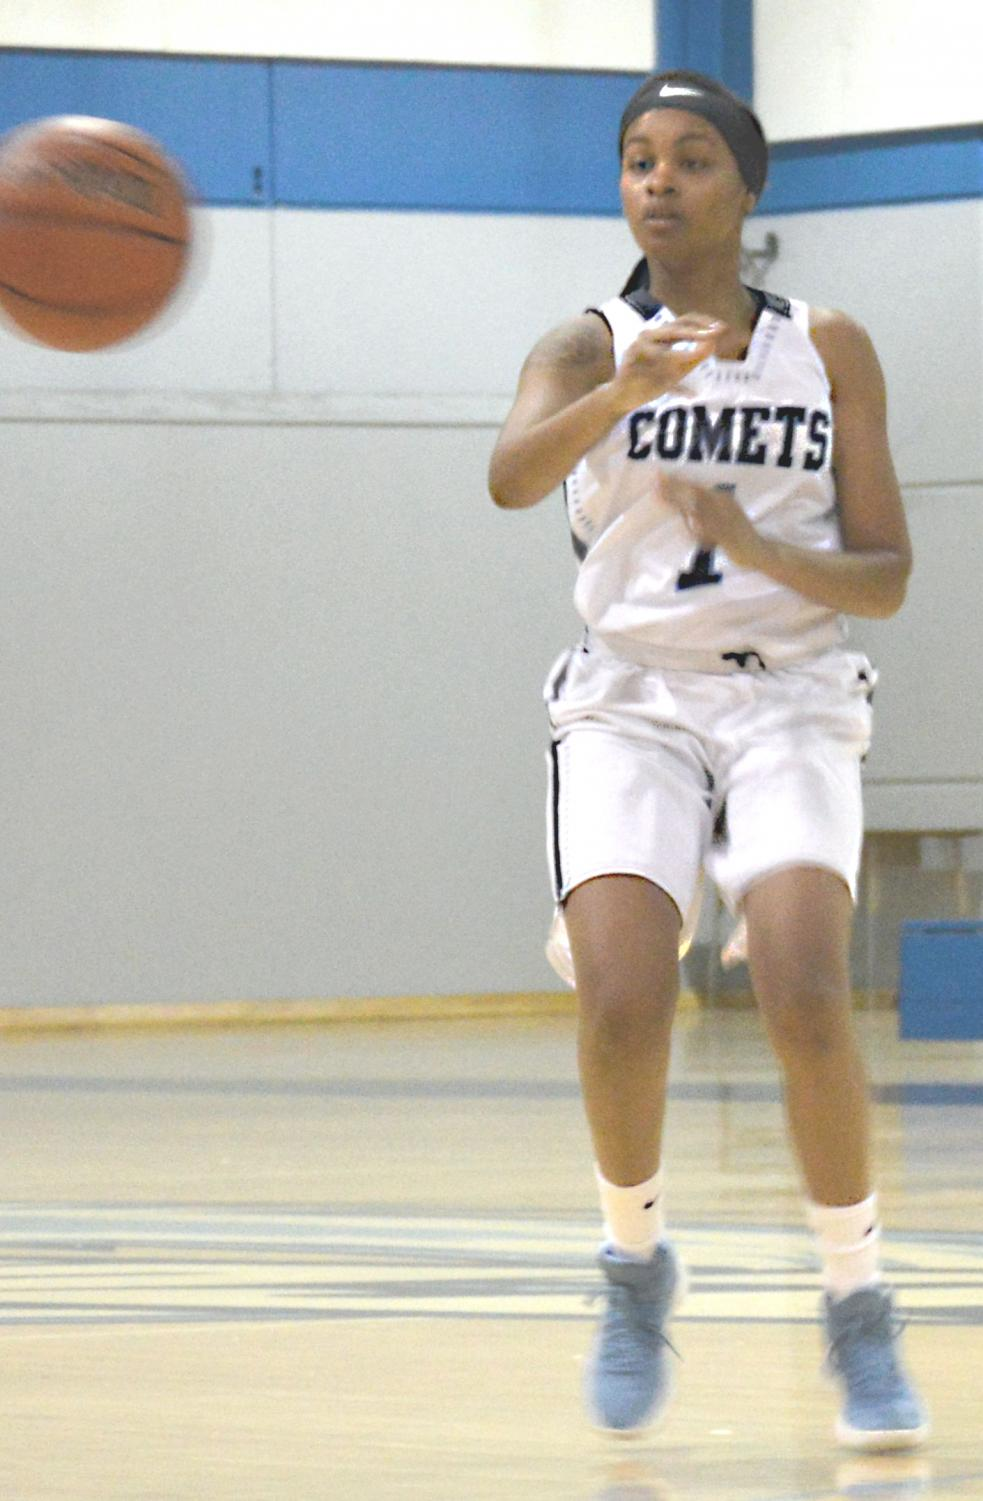 Comet forward Krisyle King passes off the ball to a team mate, as Eagles defenders rush in during Contra Costa College's loss to Laney College 69-62 in the Gymnasium on Jan. 24.